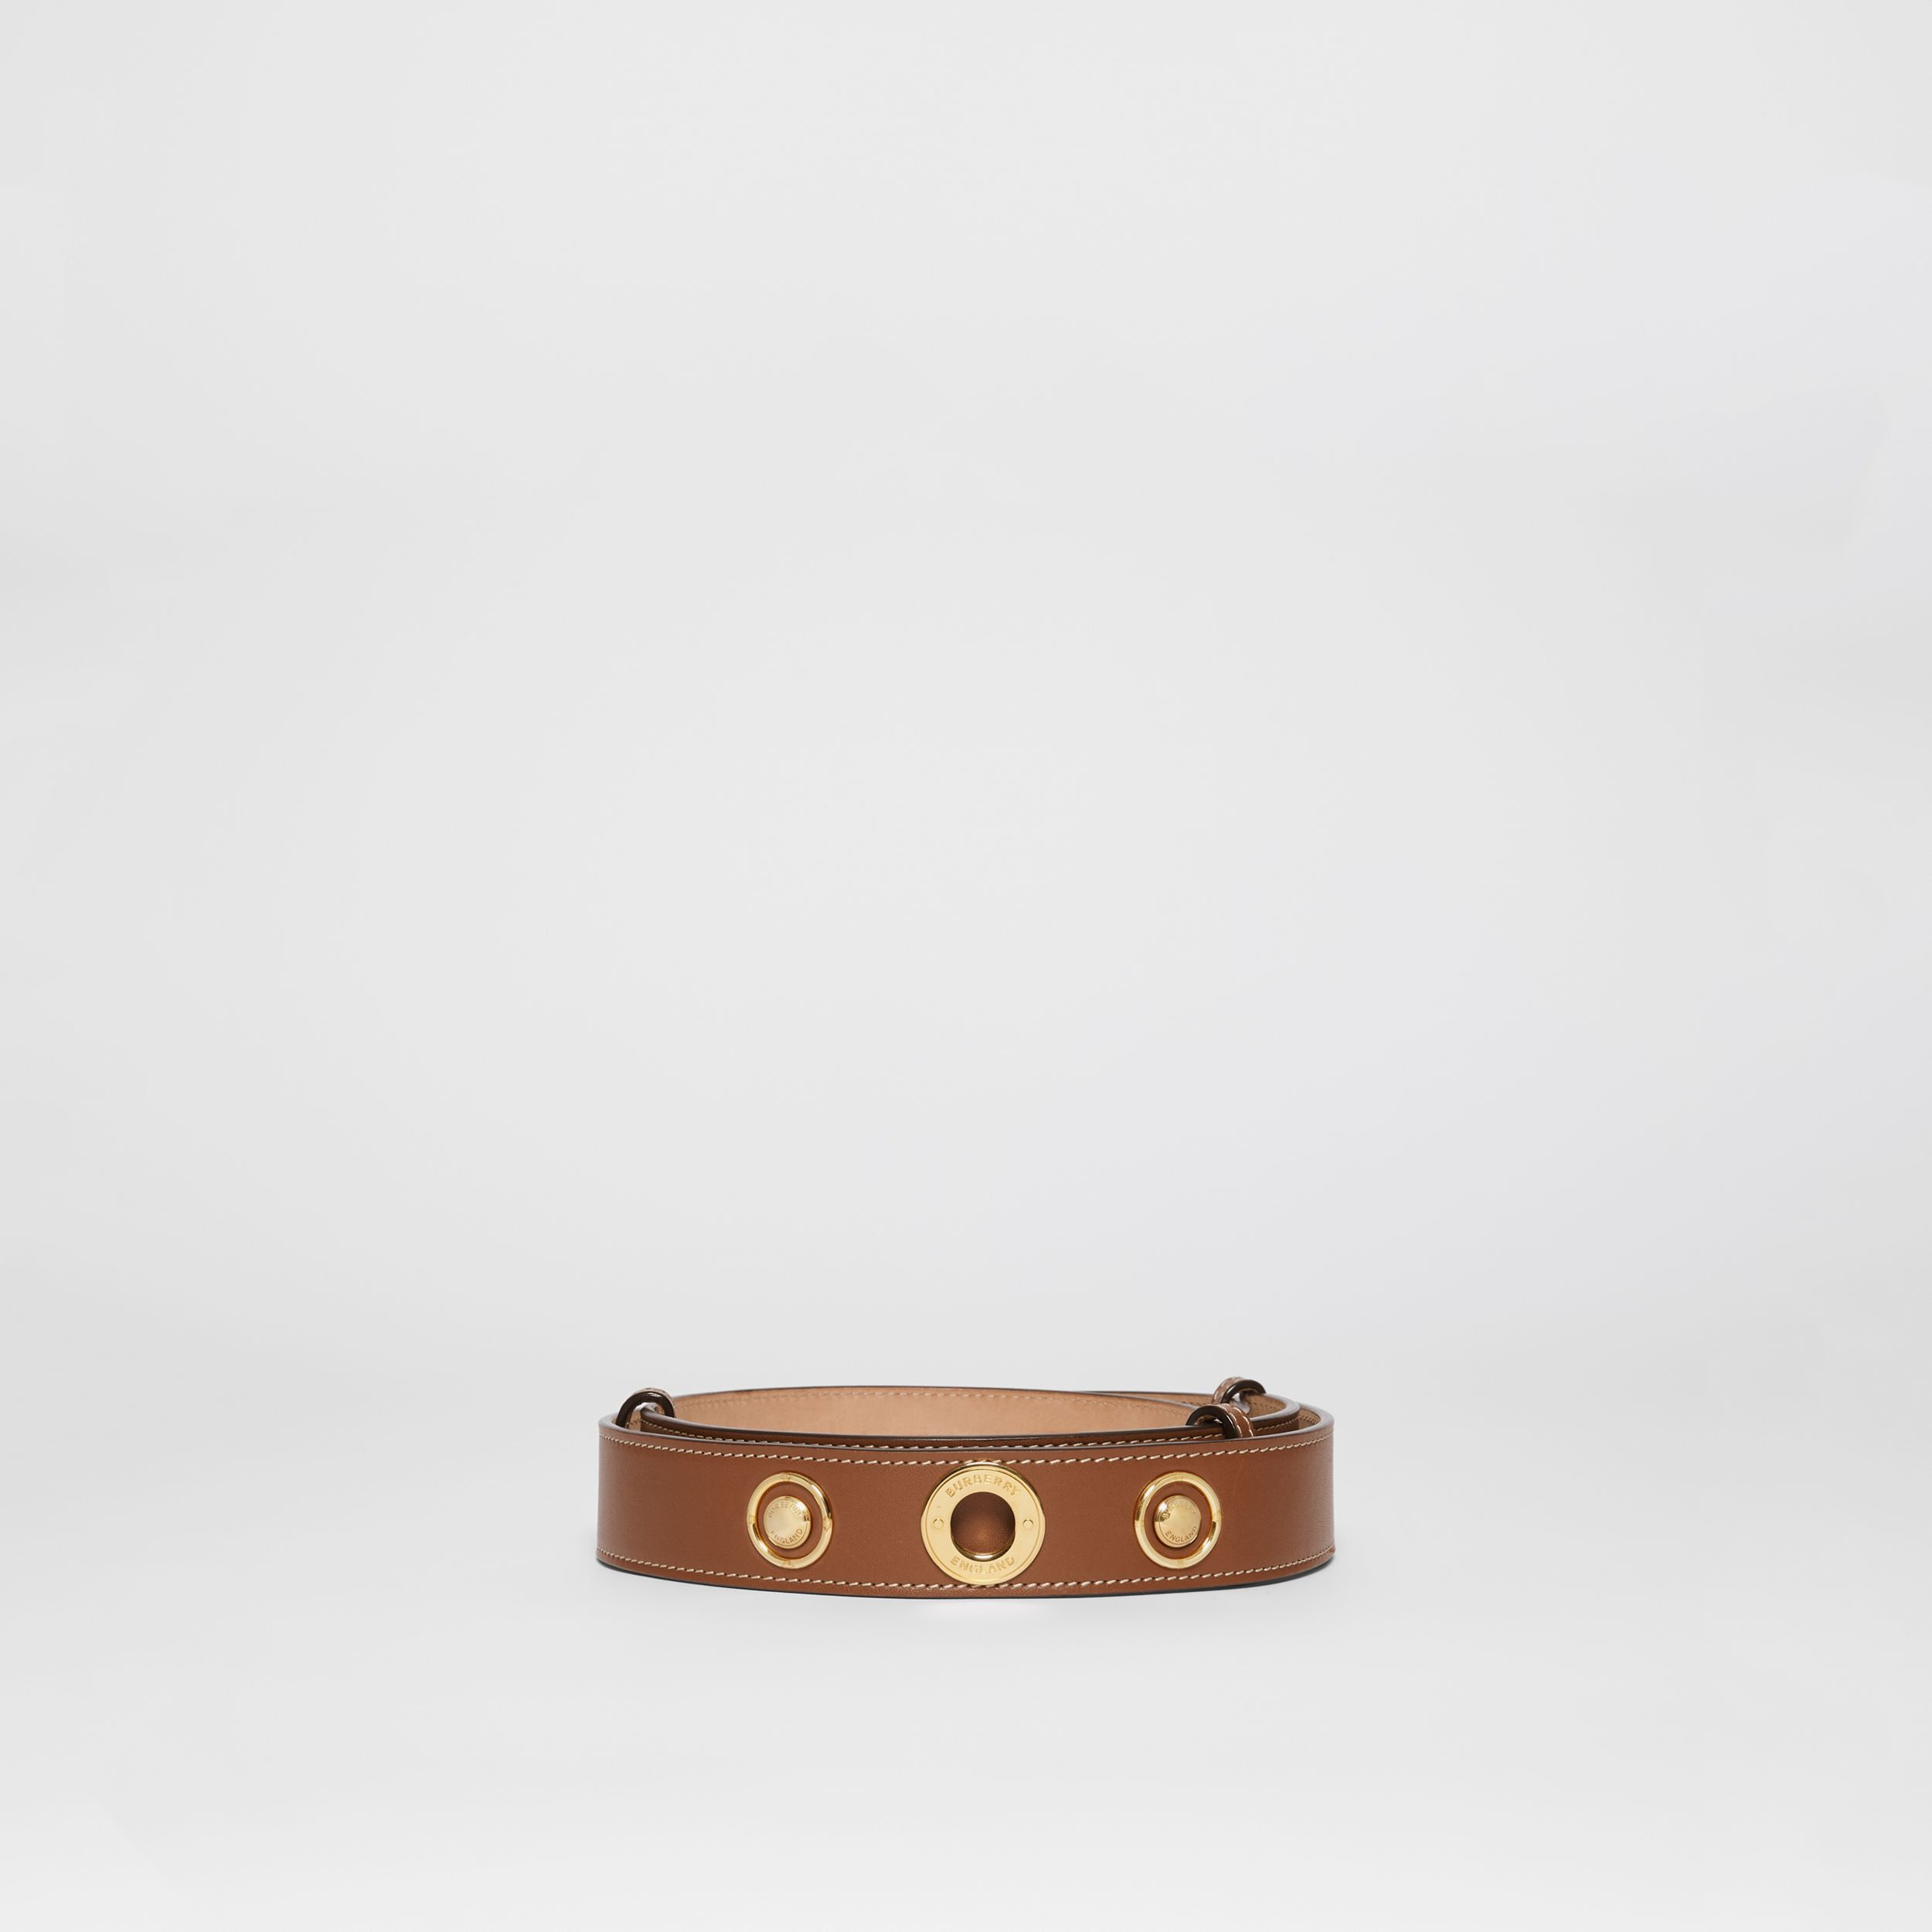 Triple Stud Leather Belt in Tan | Burberry Singapore - 4